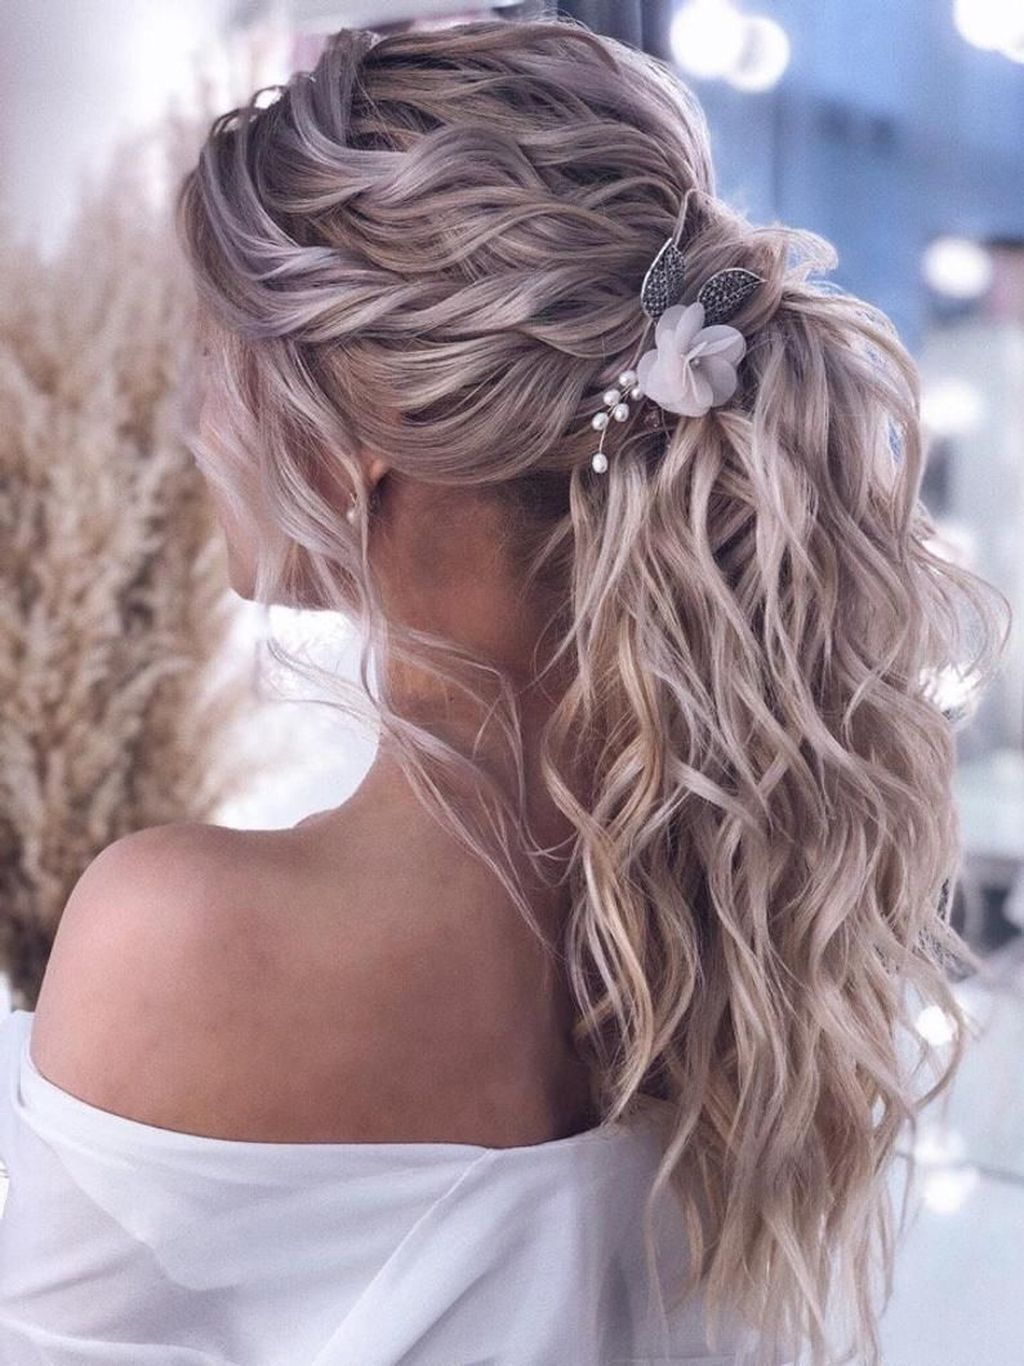 40 Perfect Wedding Hairstyles Ideas For Long Hair – Hairstyle